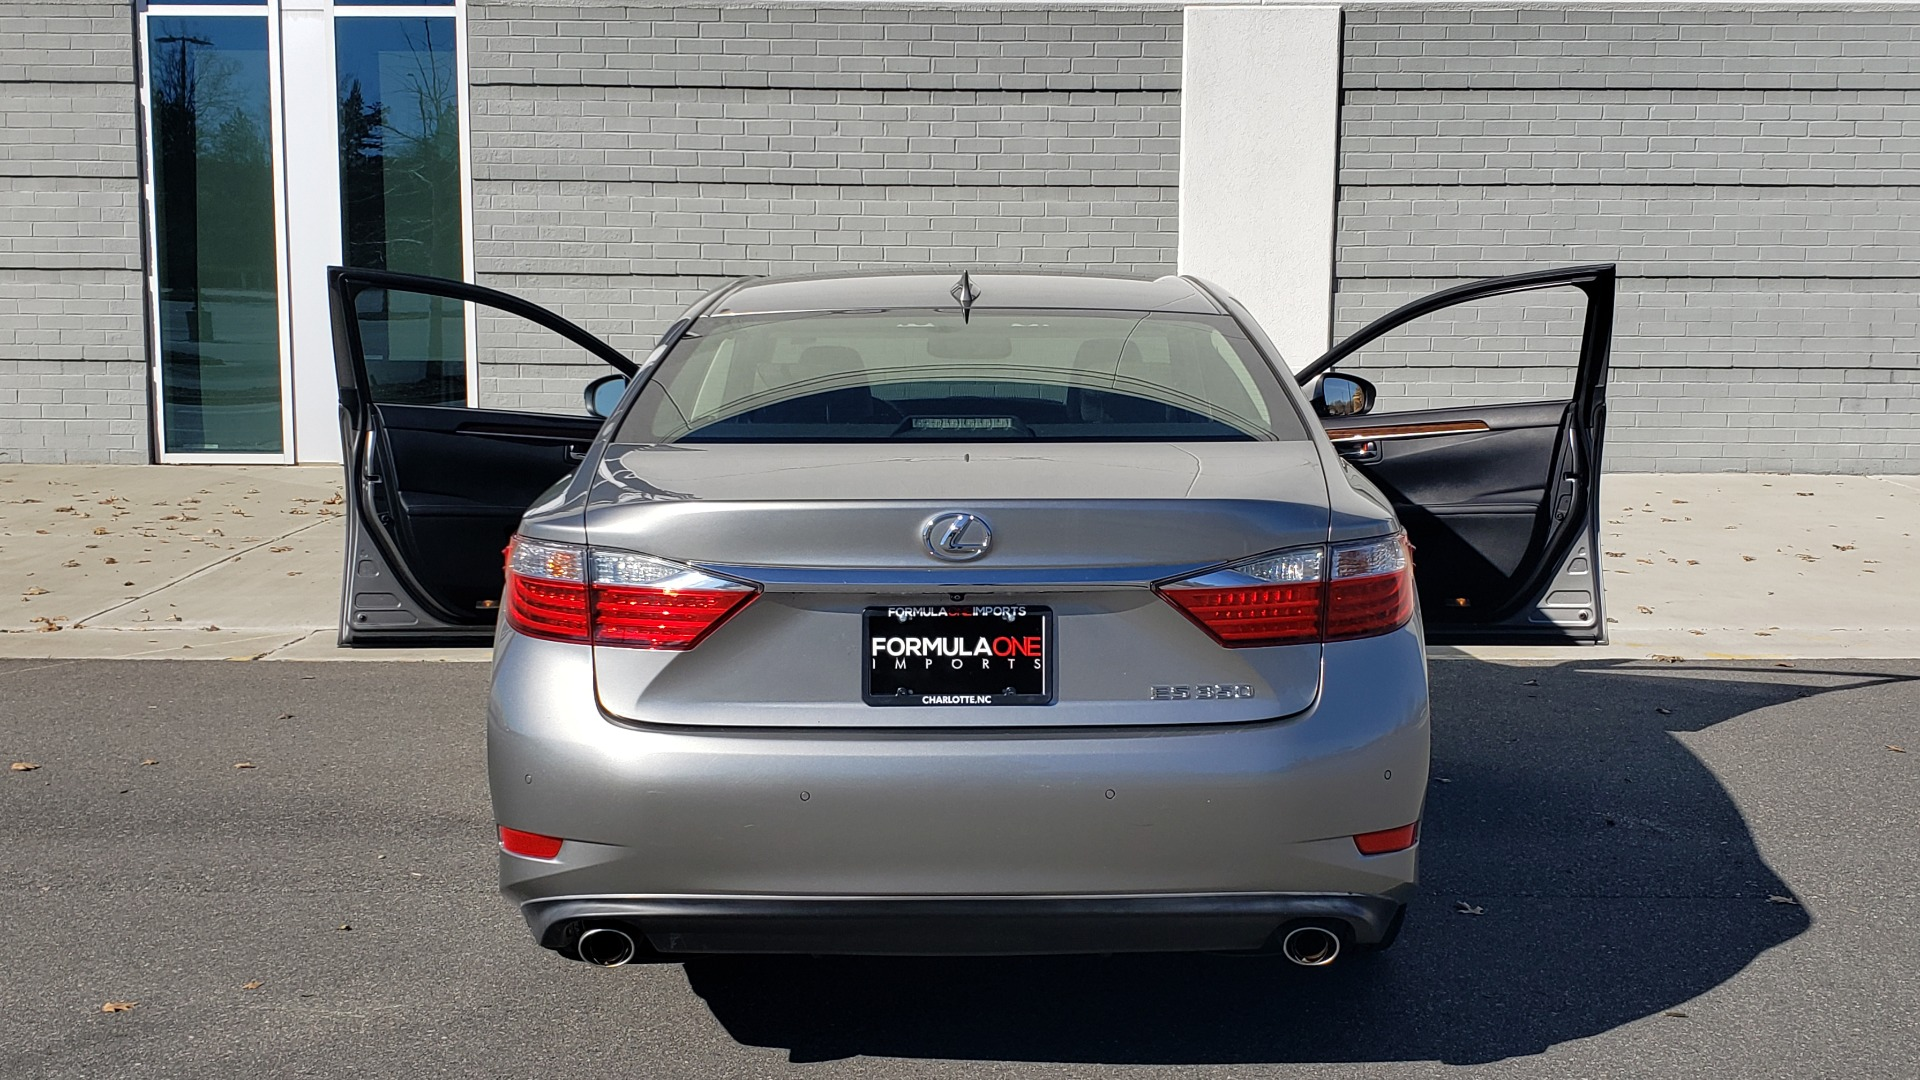 Used 2015 Lexus ES 350 LUXURY PKG / NAV / BSM / LCA / PARK ASSIST / REARVIEW for sale Sold at Formula Imports in Charlotte NC 28227 23